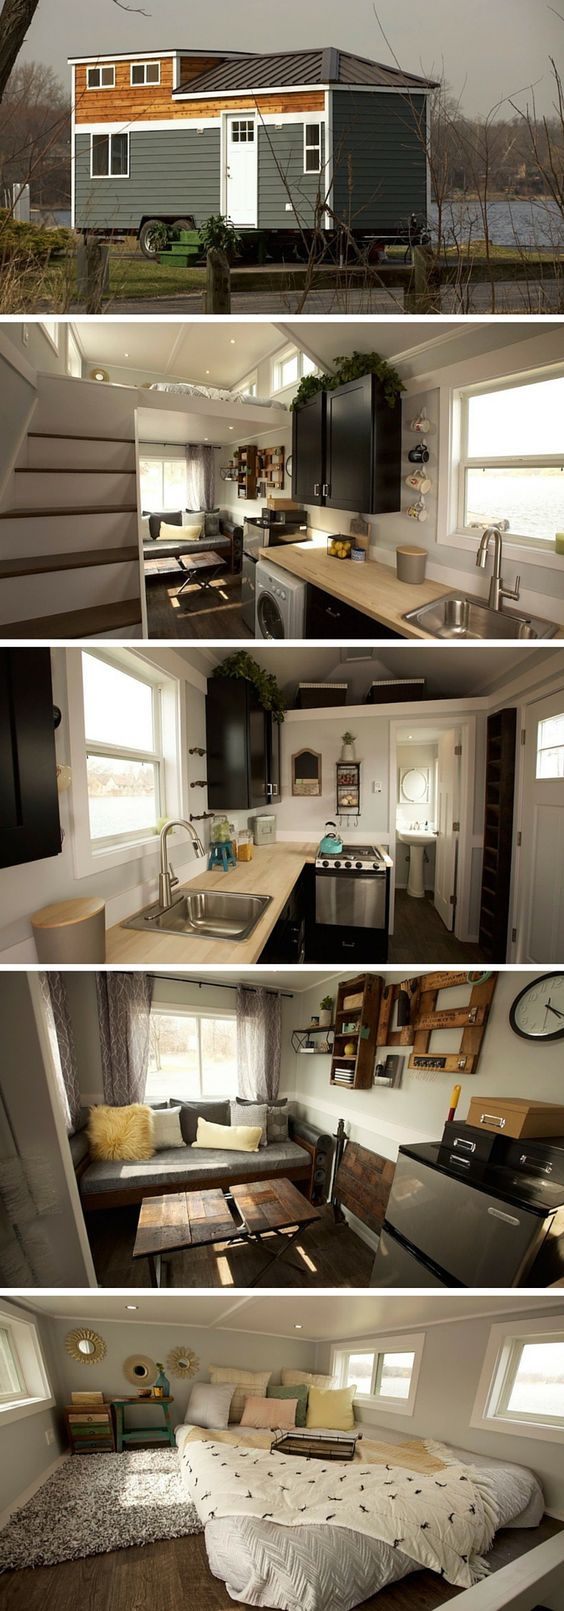 Super Easy to Build Tiny House Plans House Kitchen living and